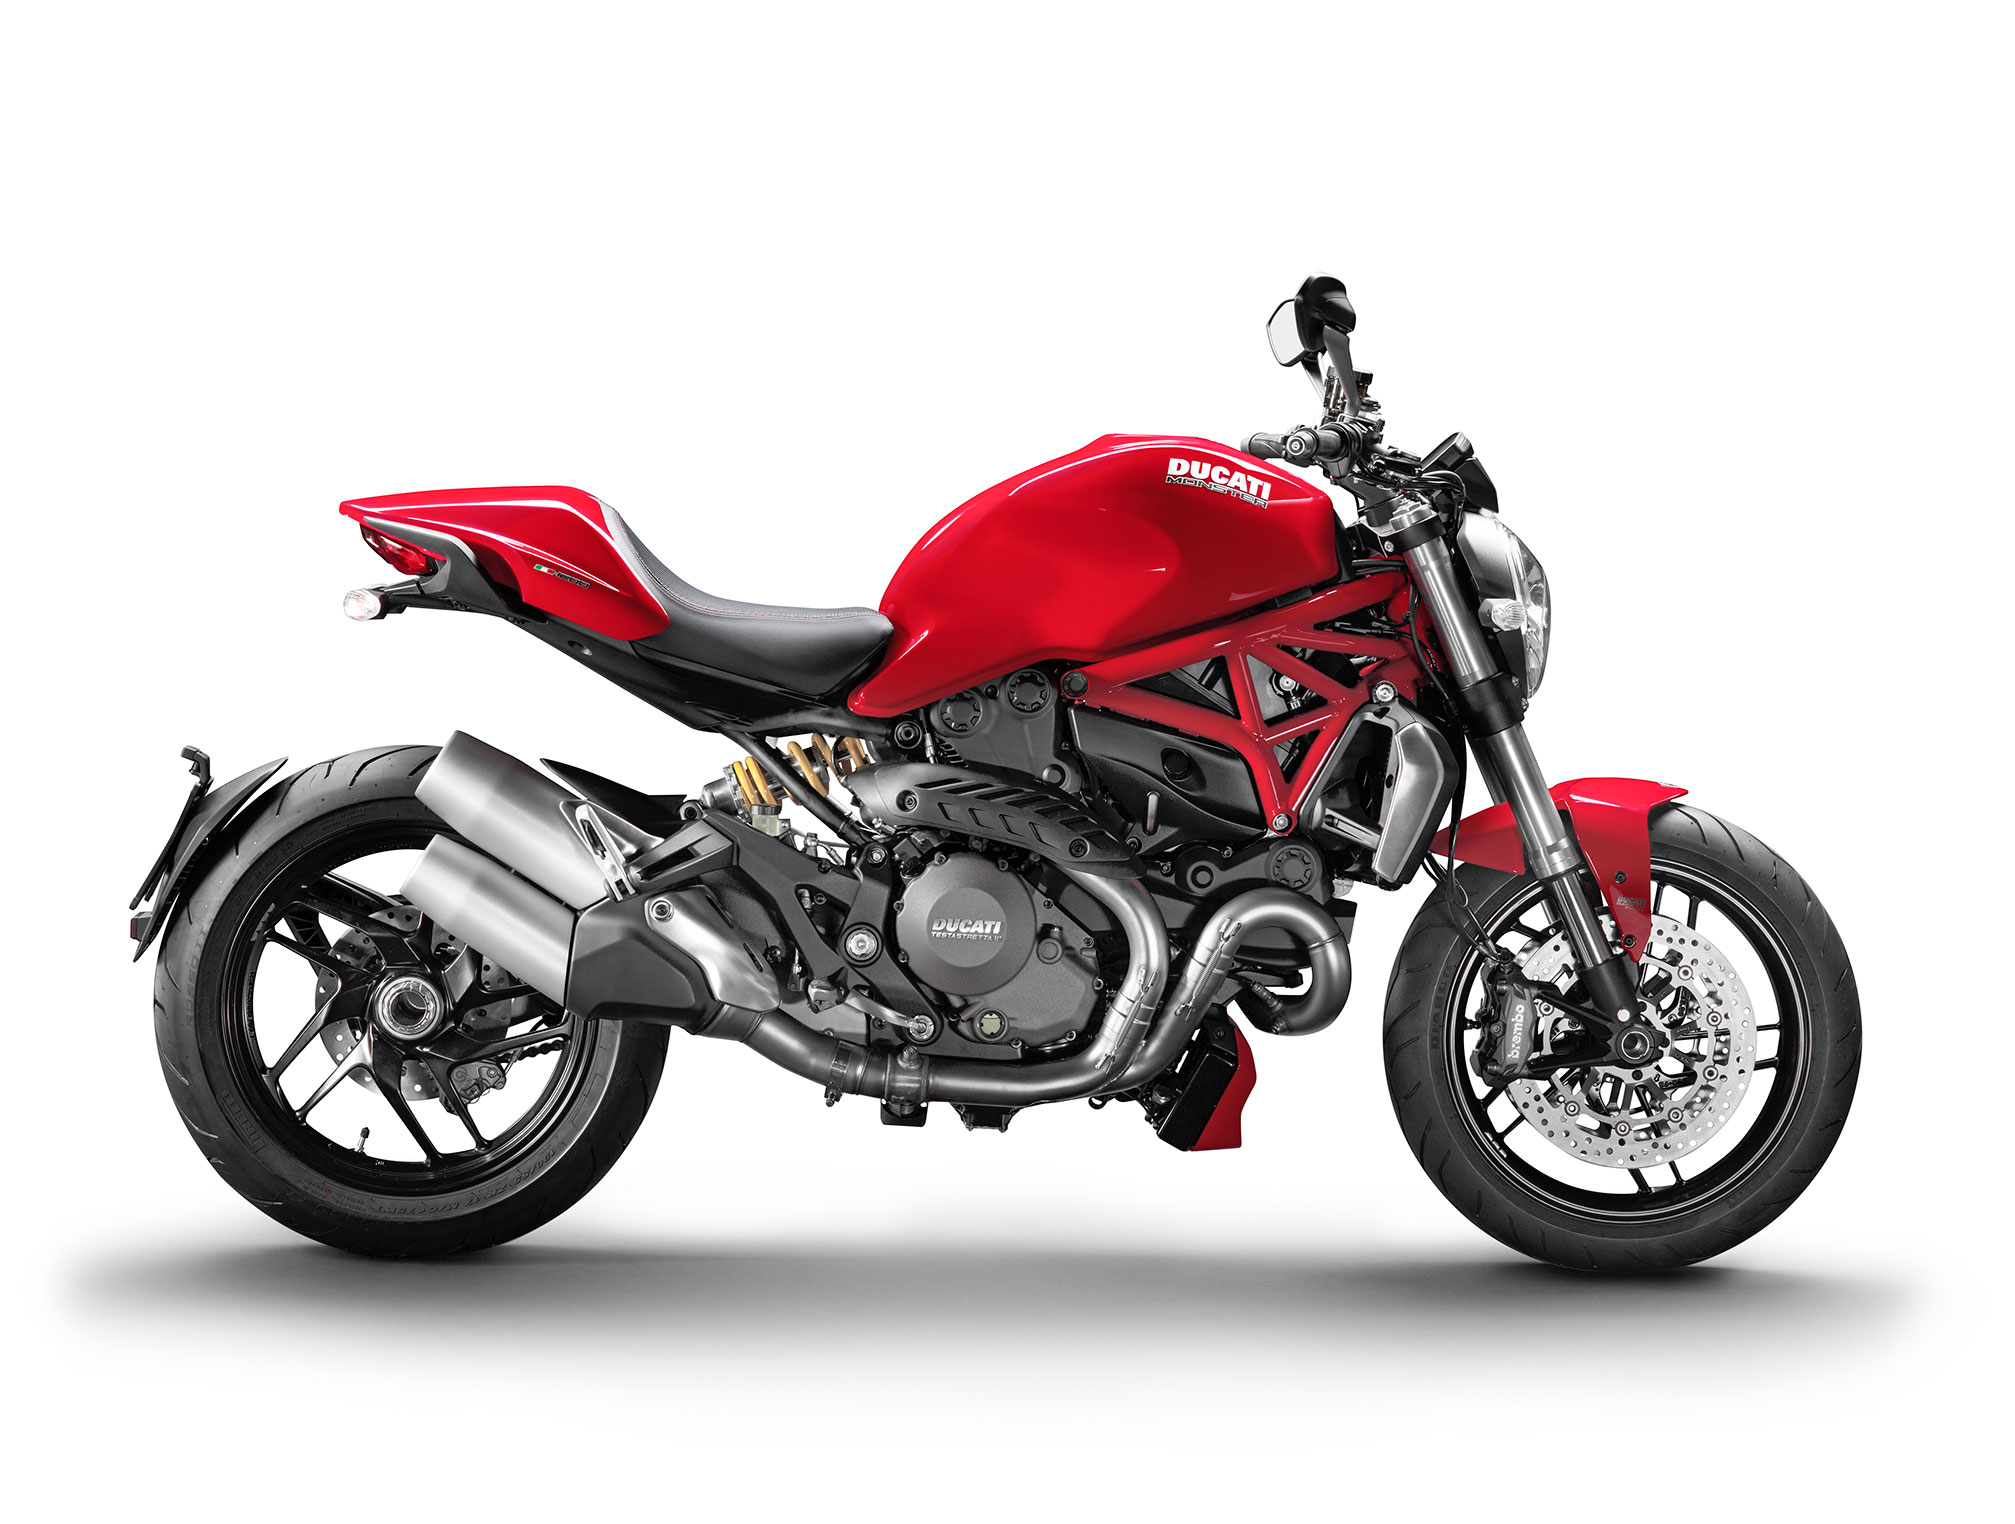 2015 ducati monster 1200 review